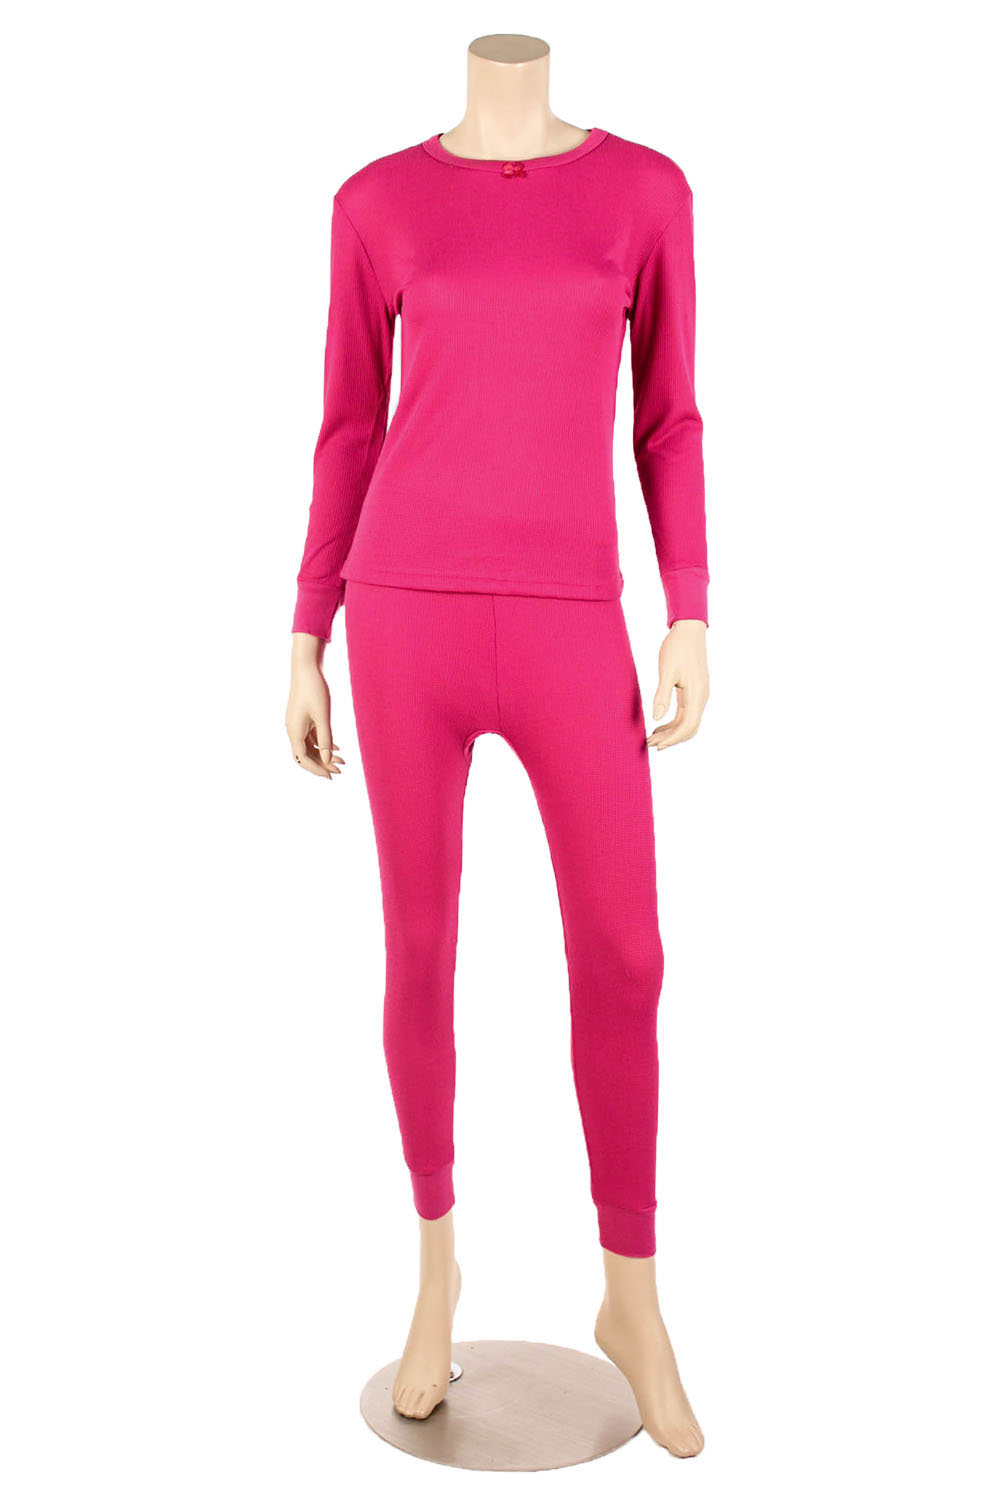 100 Cotton Thermal Underwear Womens Breeze Clothing